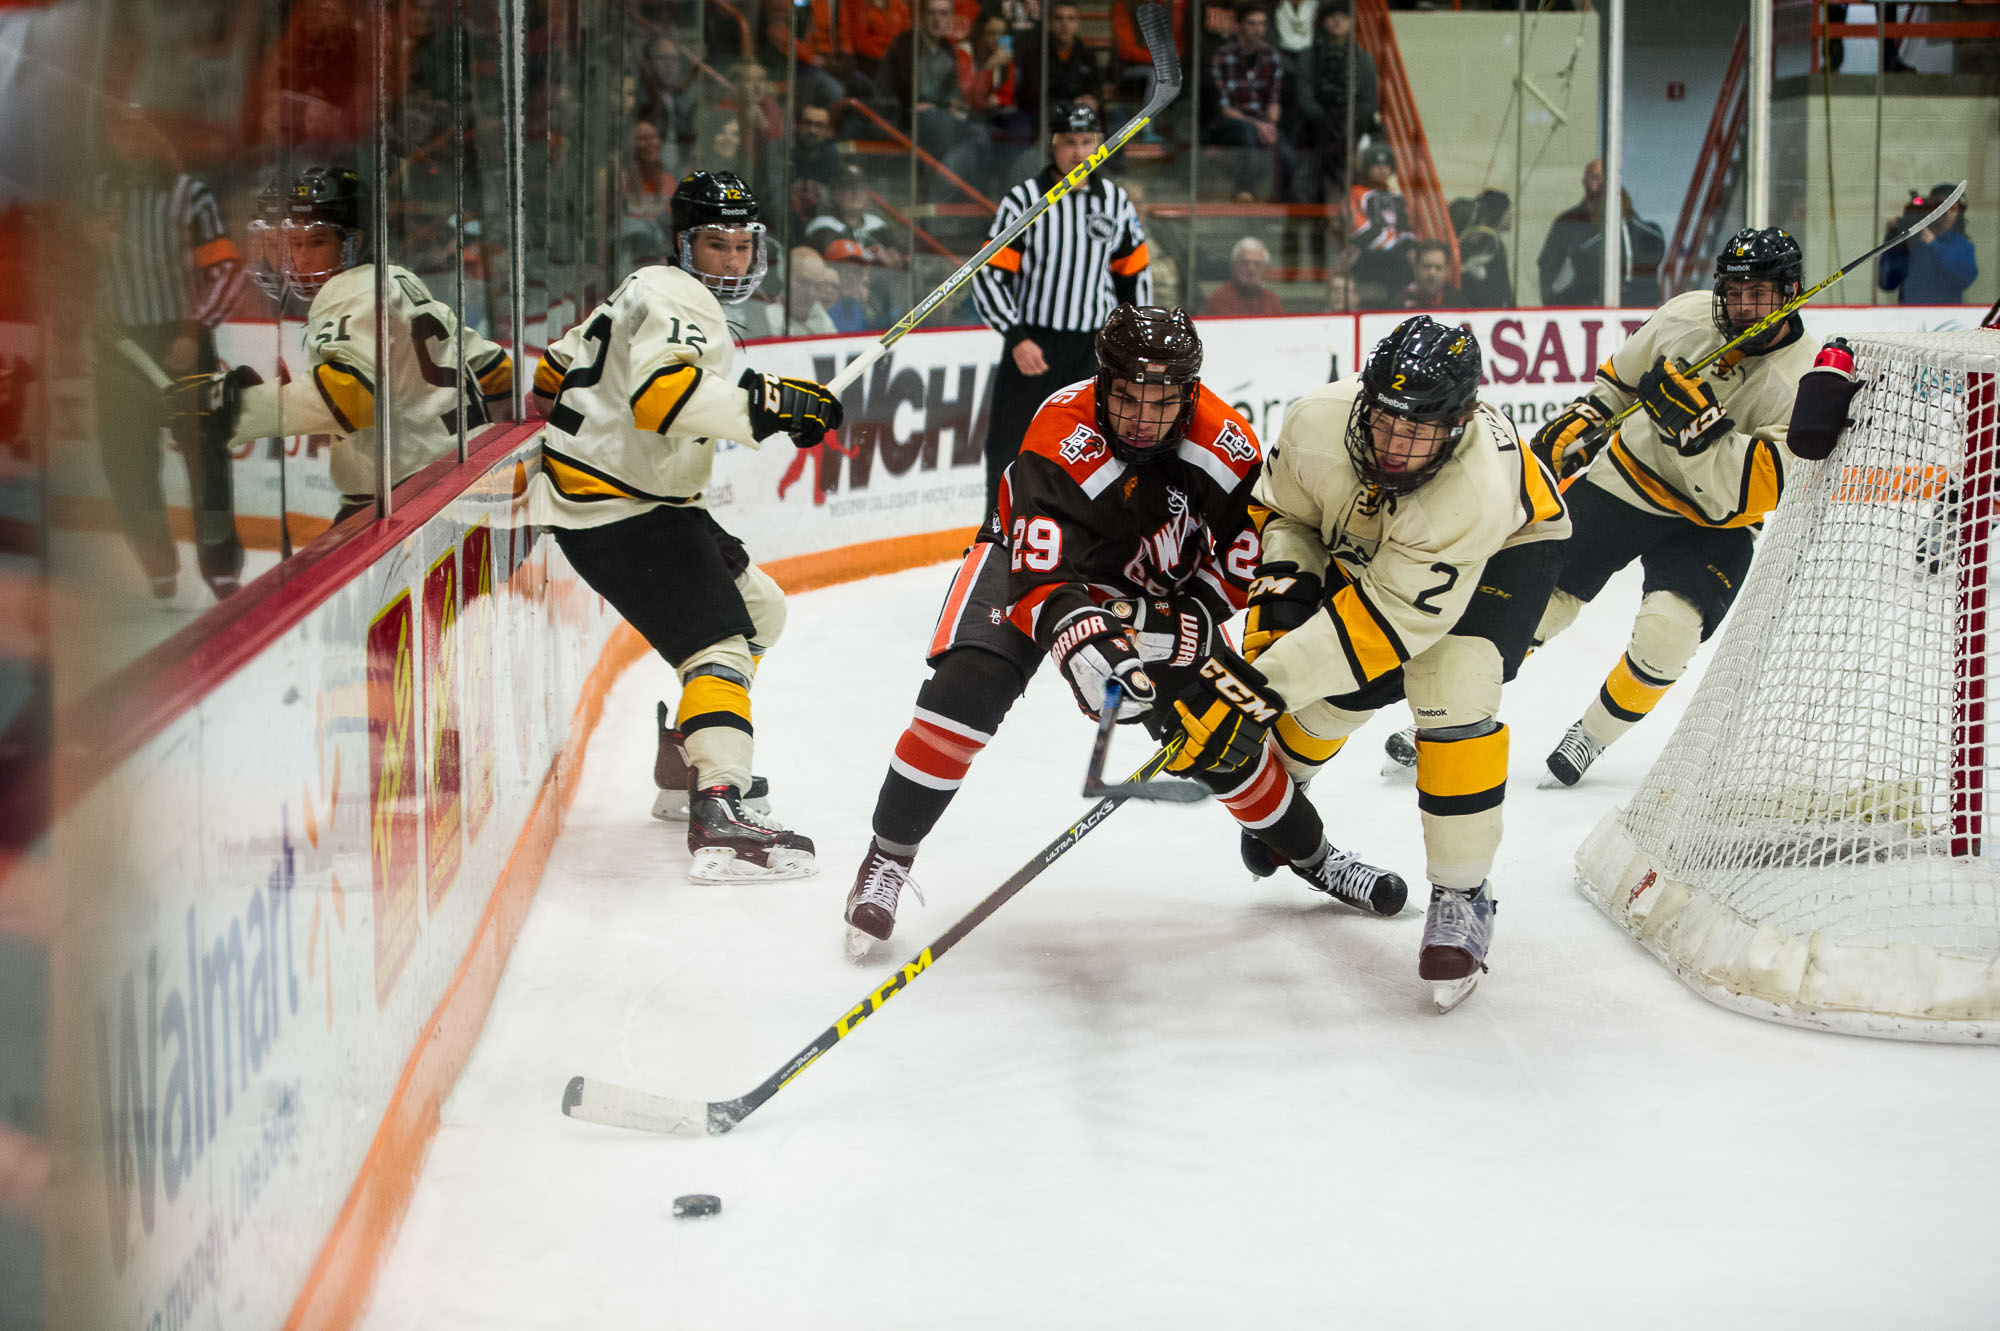 Falcons fall 4-1 to Huskies